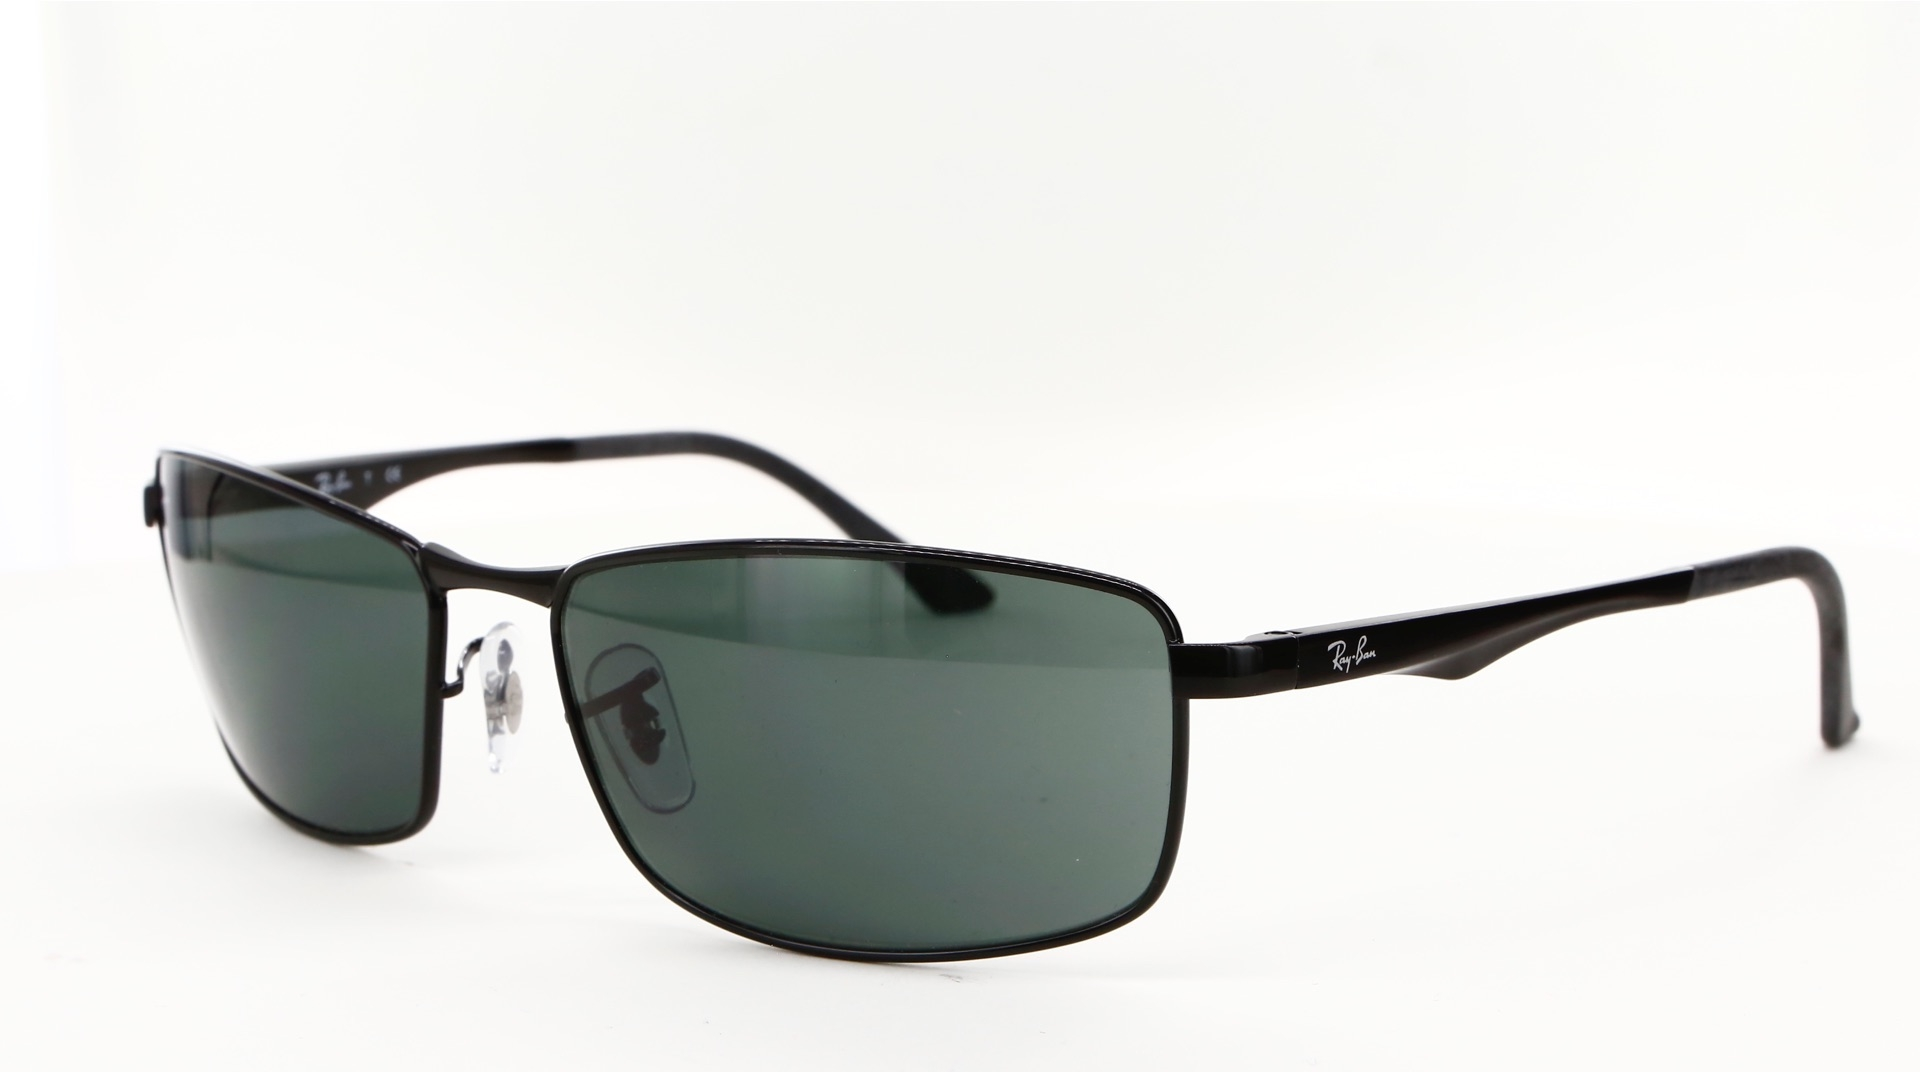 Ray-Ban - ref: 70458